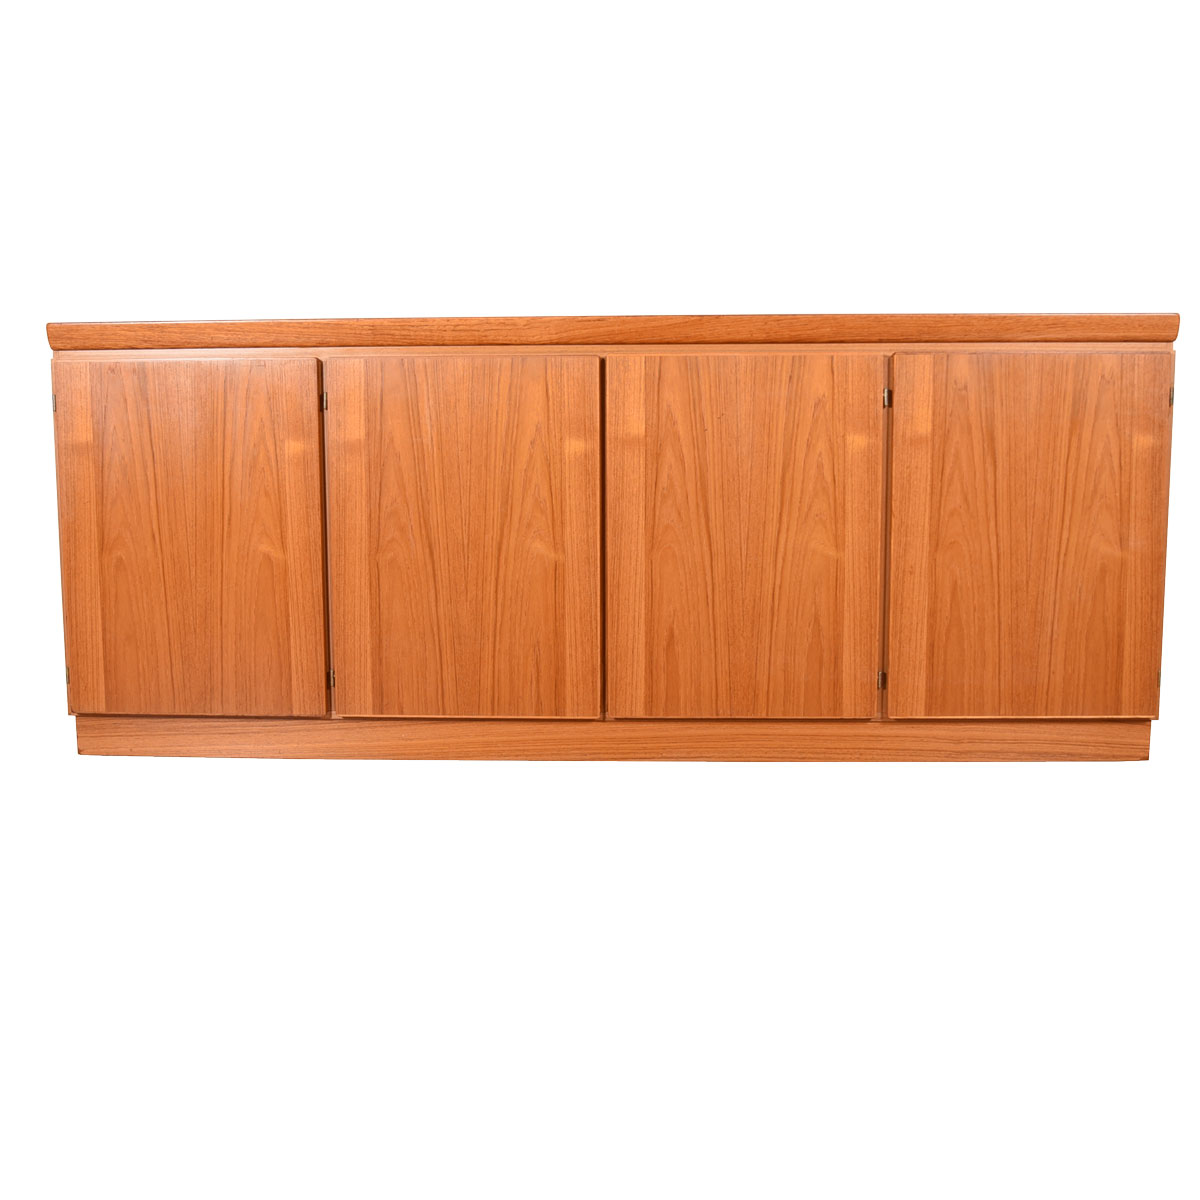 Four Door Danish Modern Teak Credenza / Bar Cabinet